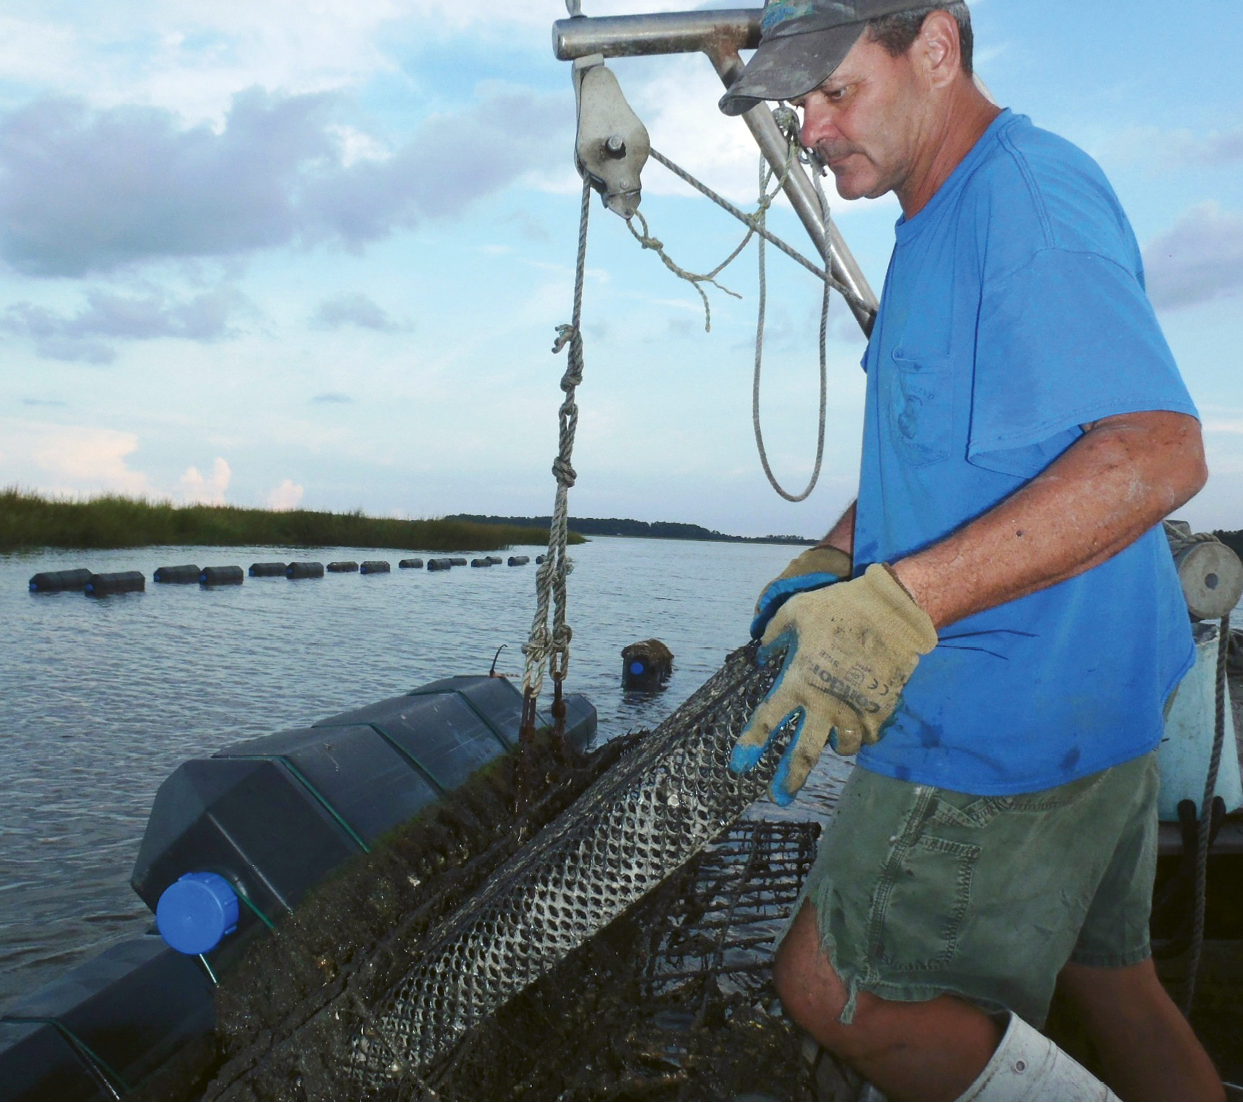 Frank Roberts of Lady's Island Oyster launched South Carolina's first and only oyster hatchery (above left); in addition to growing his own singles in the deliciously high salinity of Beaufort's tidal estuaries, he supplies growers up and down the coast with baby oyster seed.